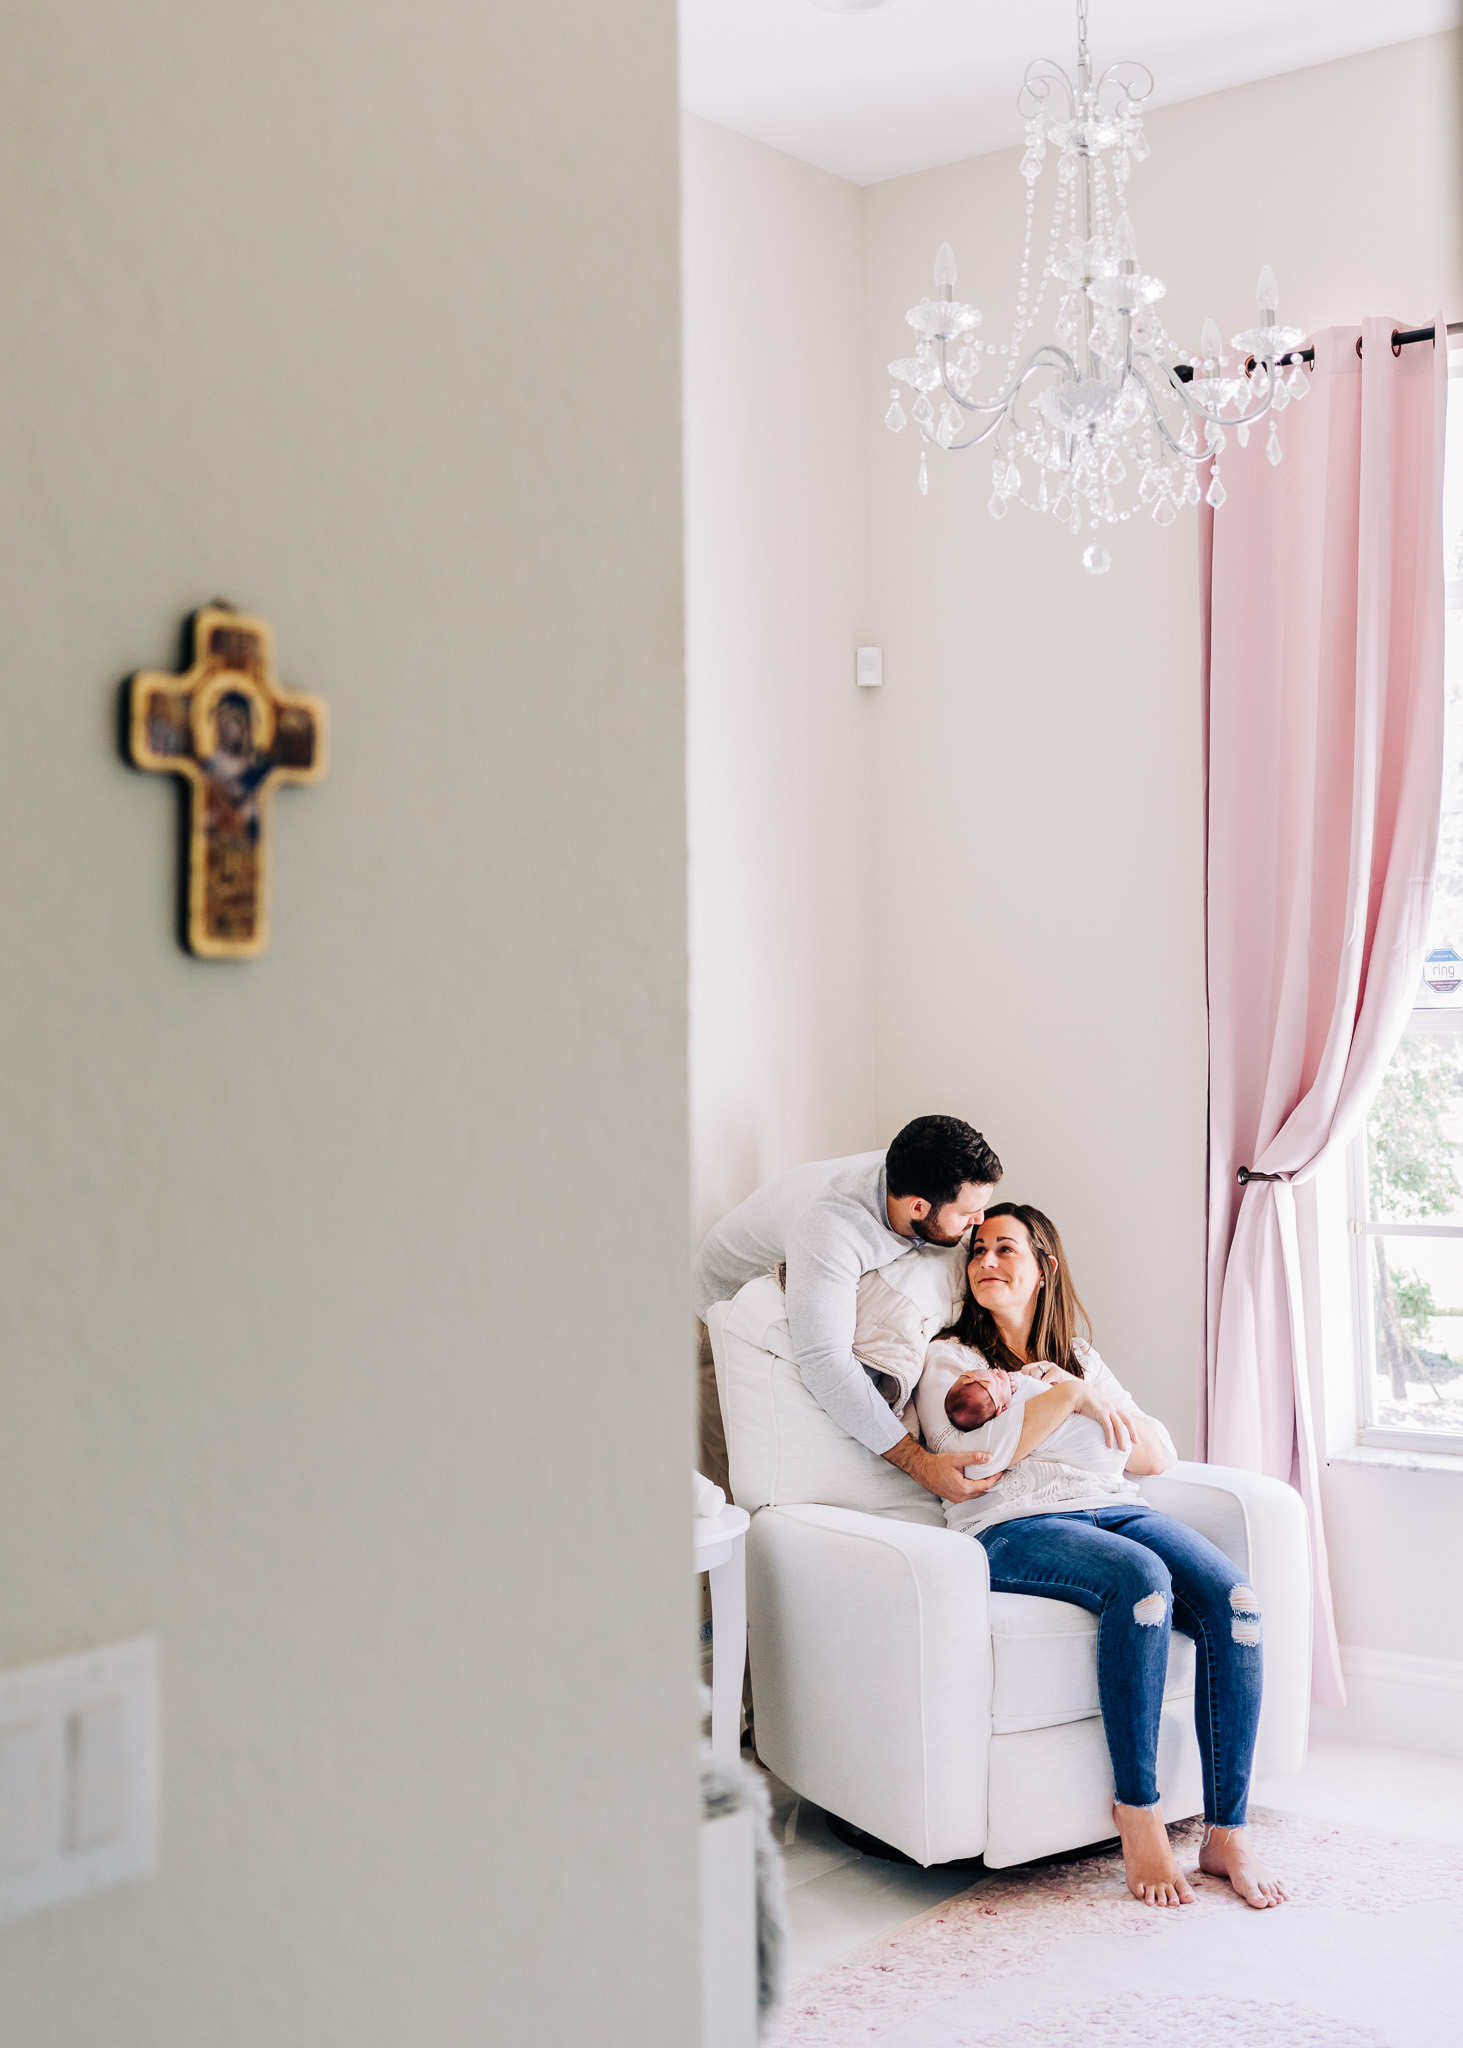 in-home-newborn-session-erica-brooke-photography-3